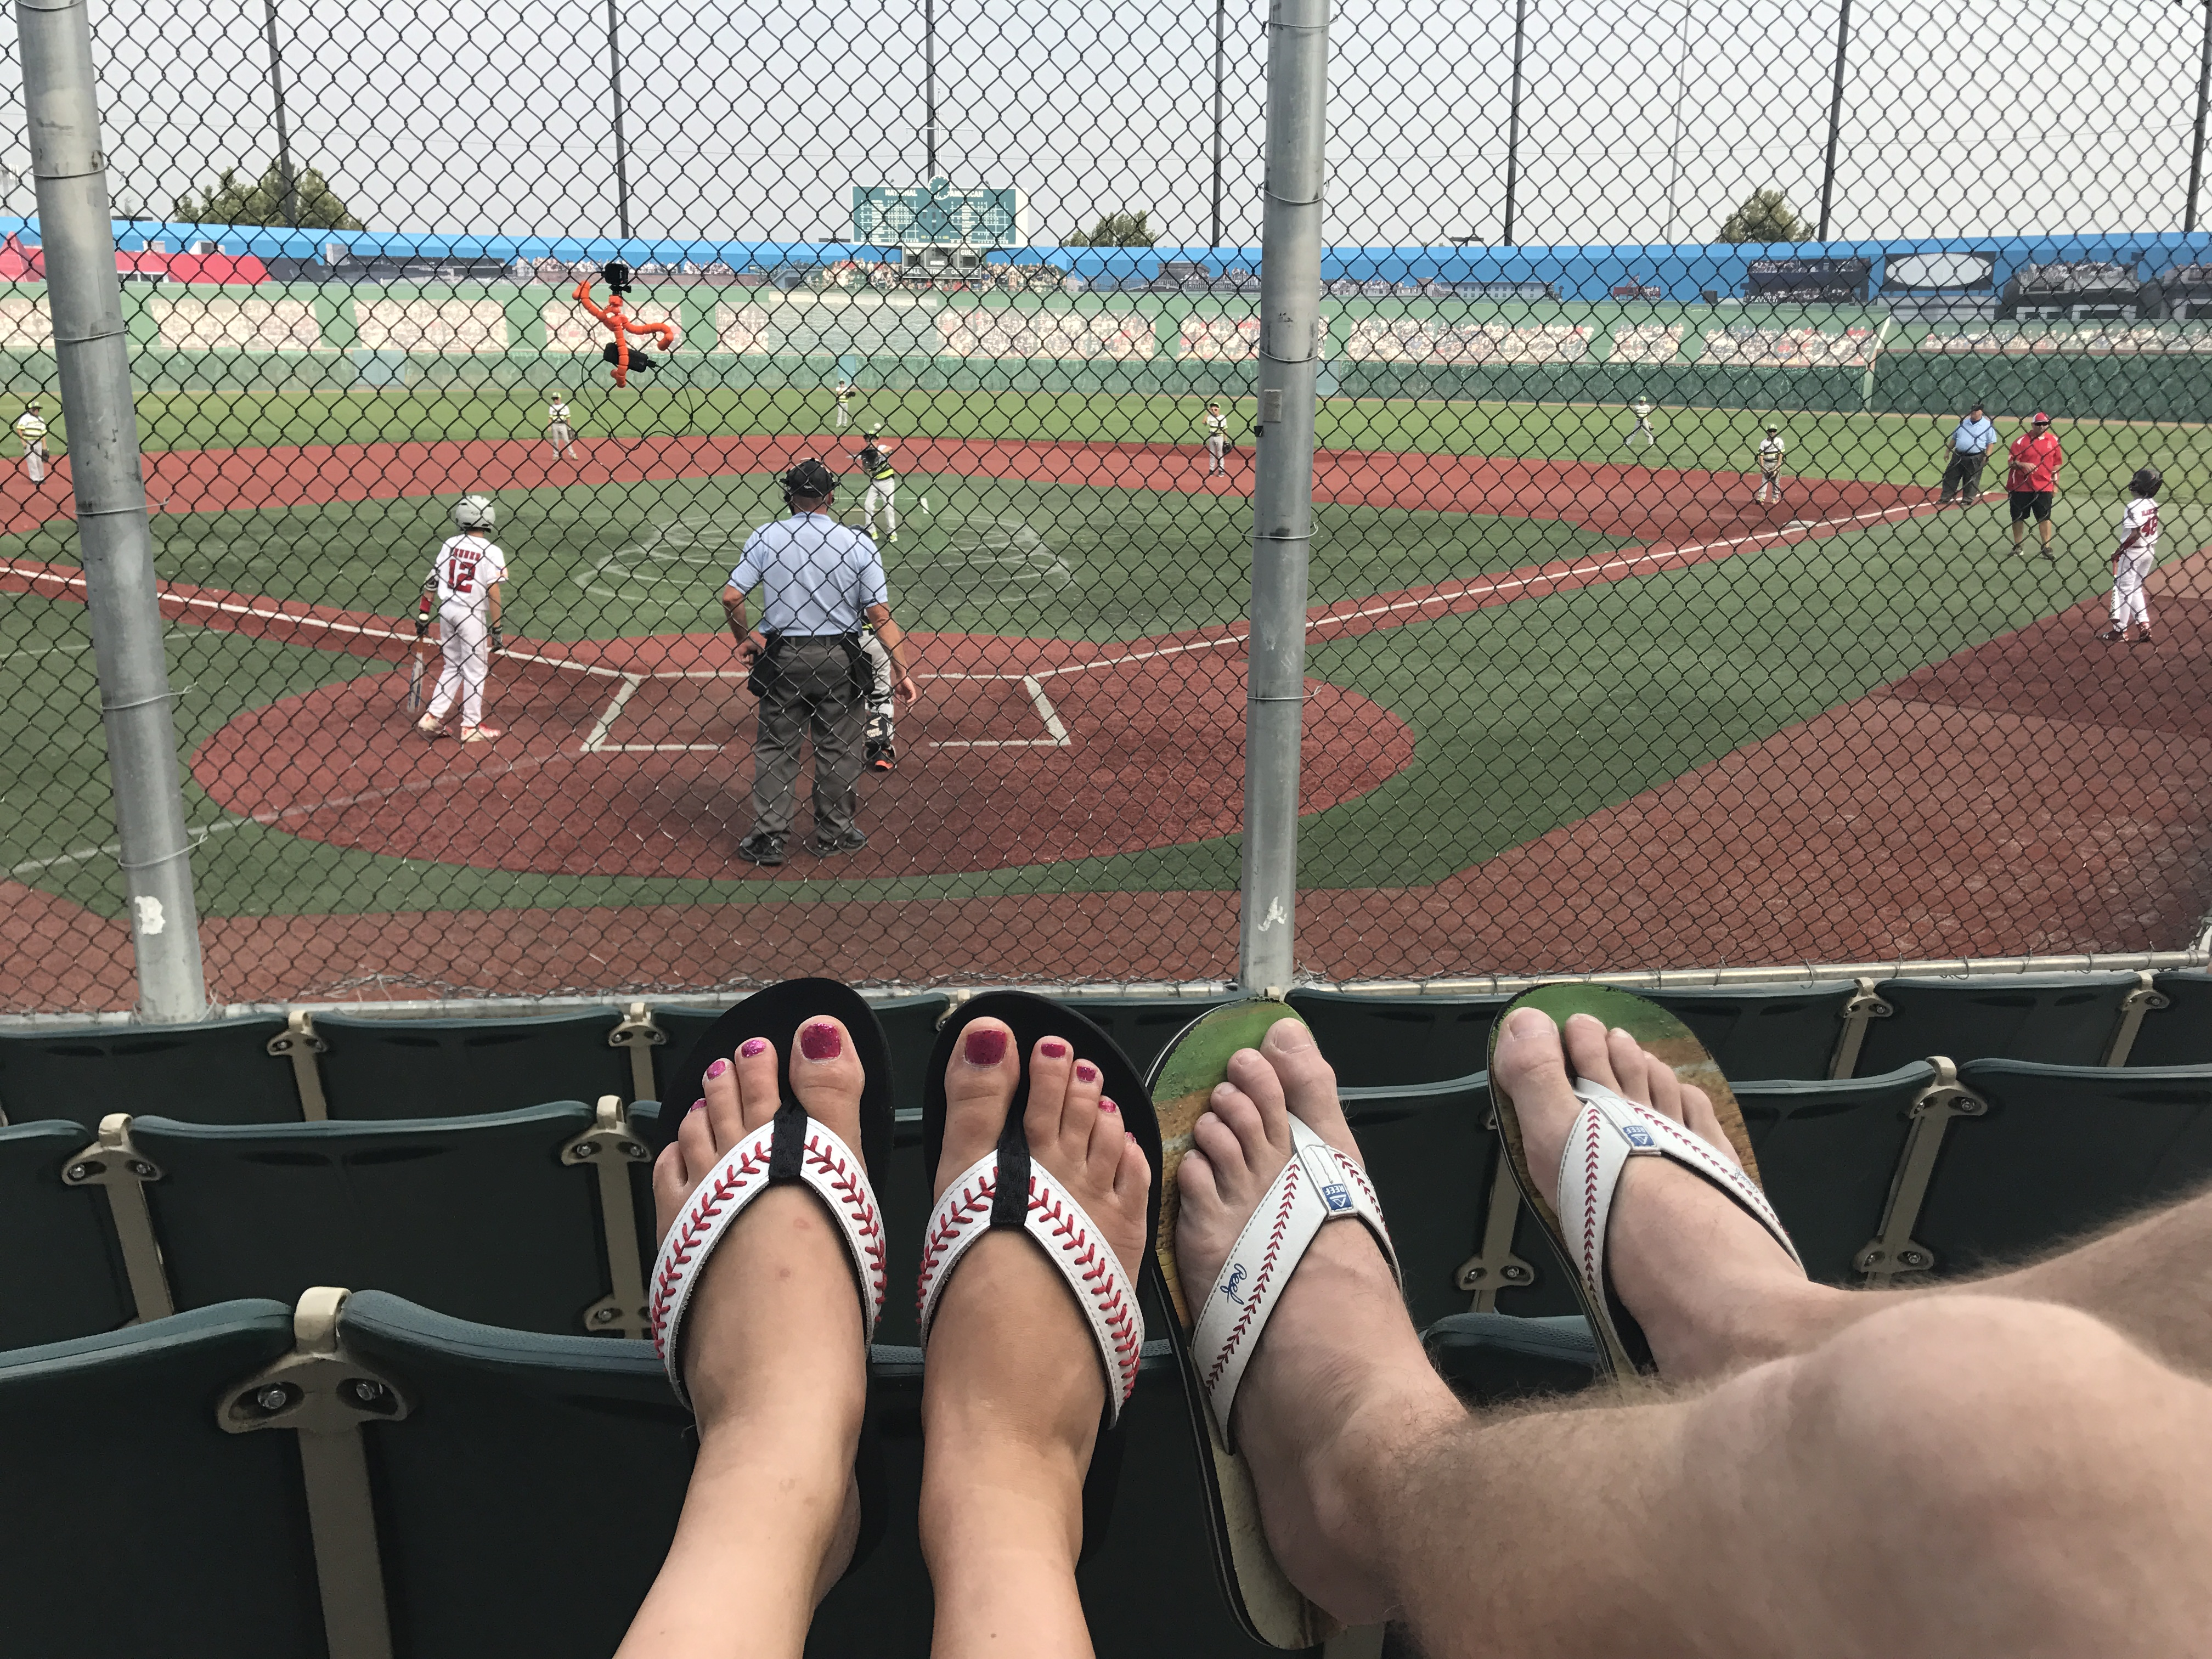 Baseball Flip Flops -Love these baseball flip flops! I wear them All. The. Time. They are comfy and adorable- I have gotten more compliments on these sandals than any other item of clothing I've ever owned! PlanForAwesome